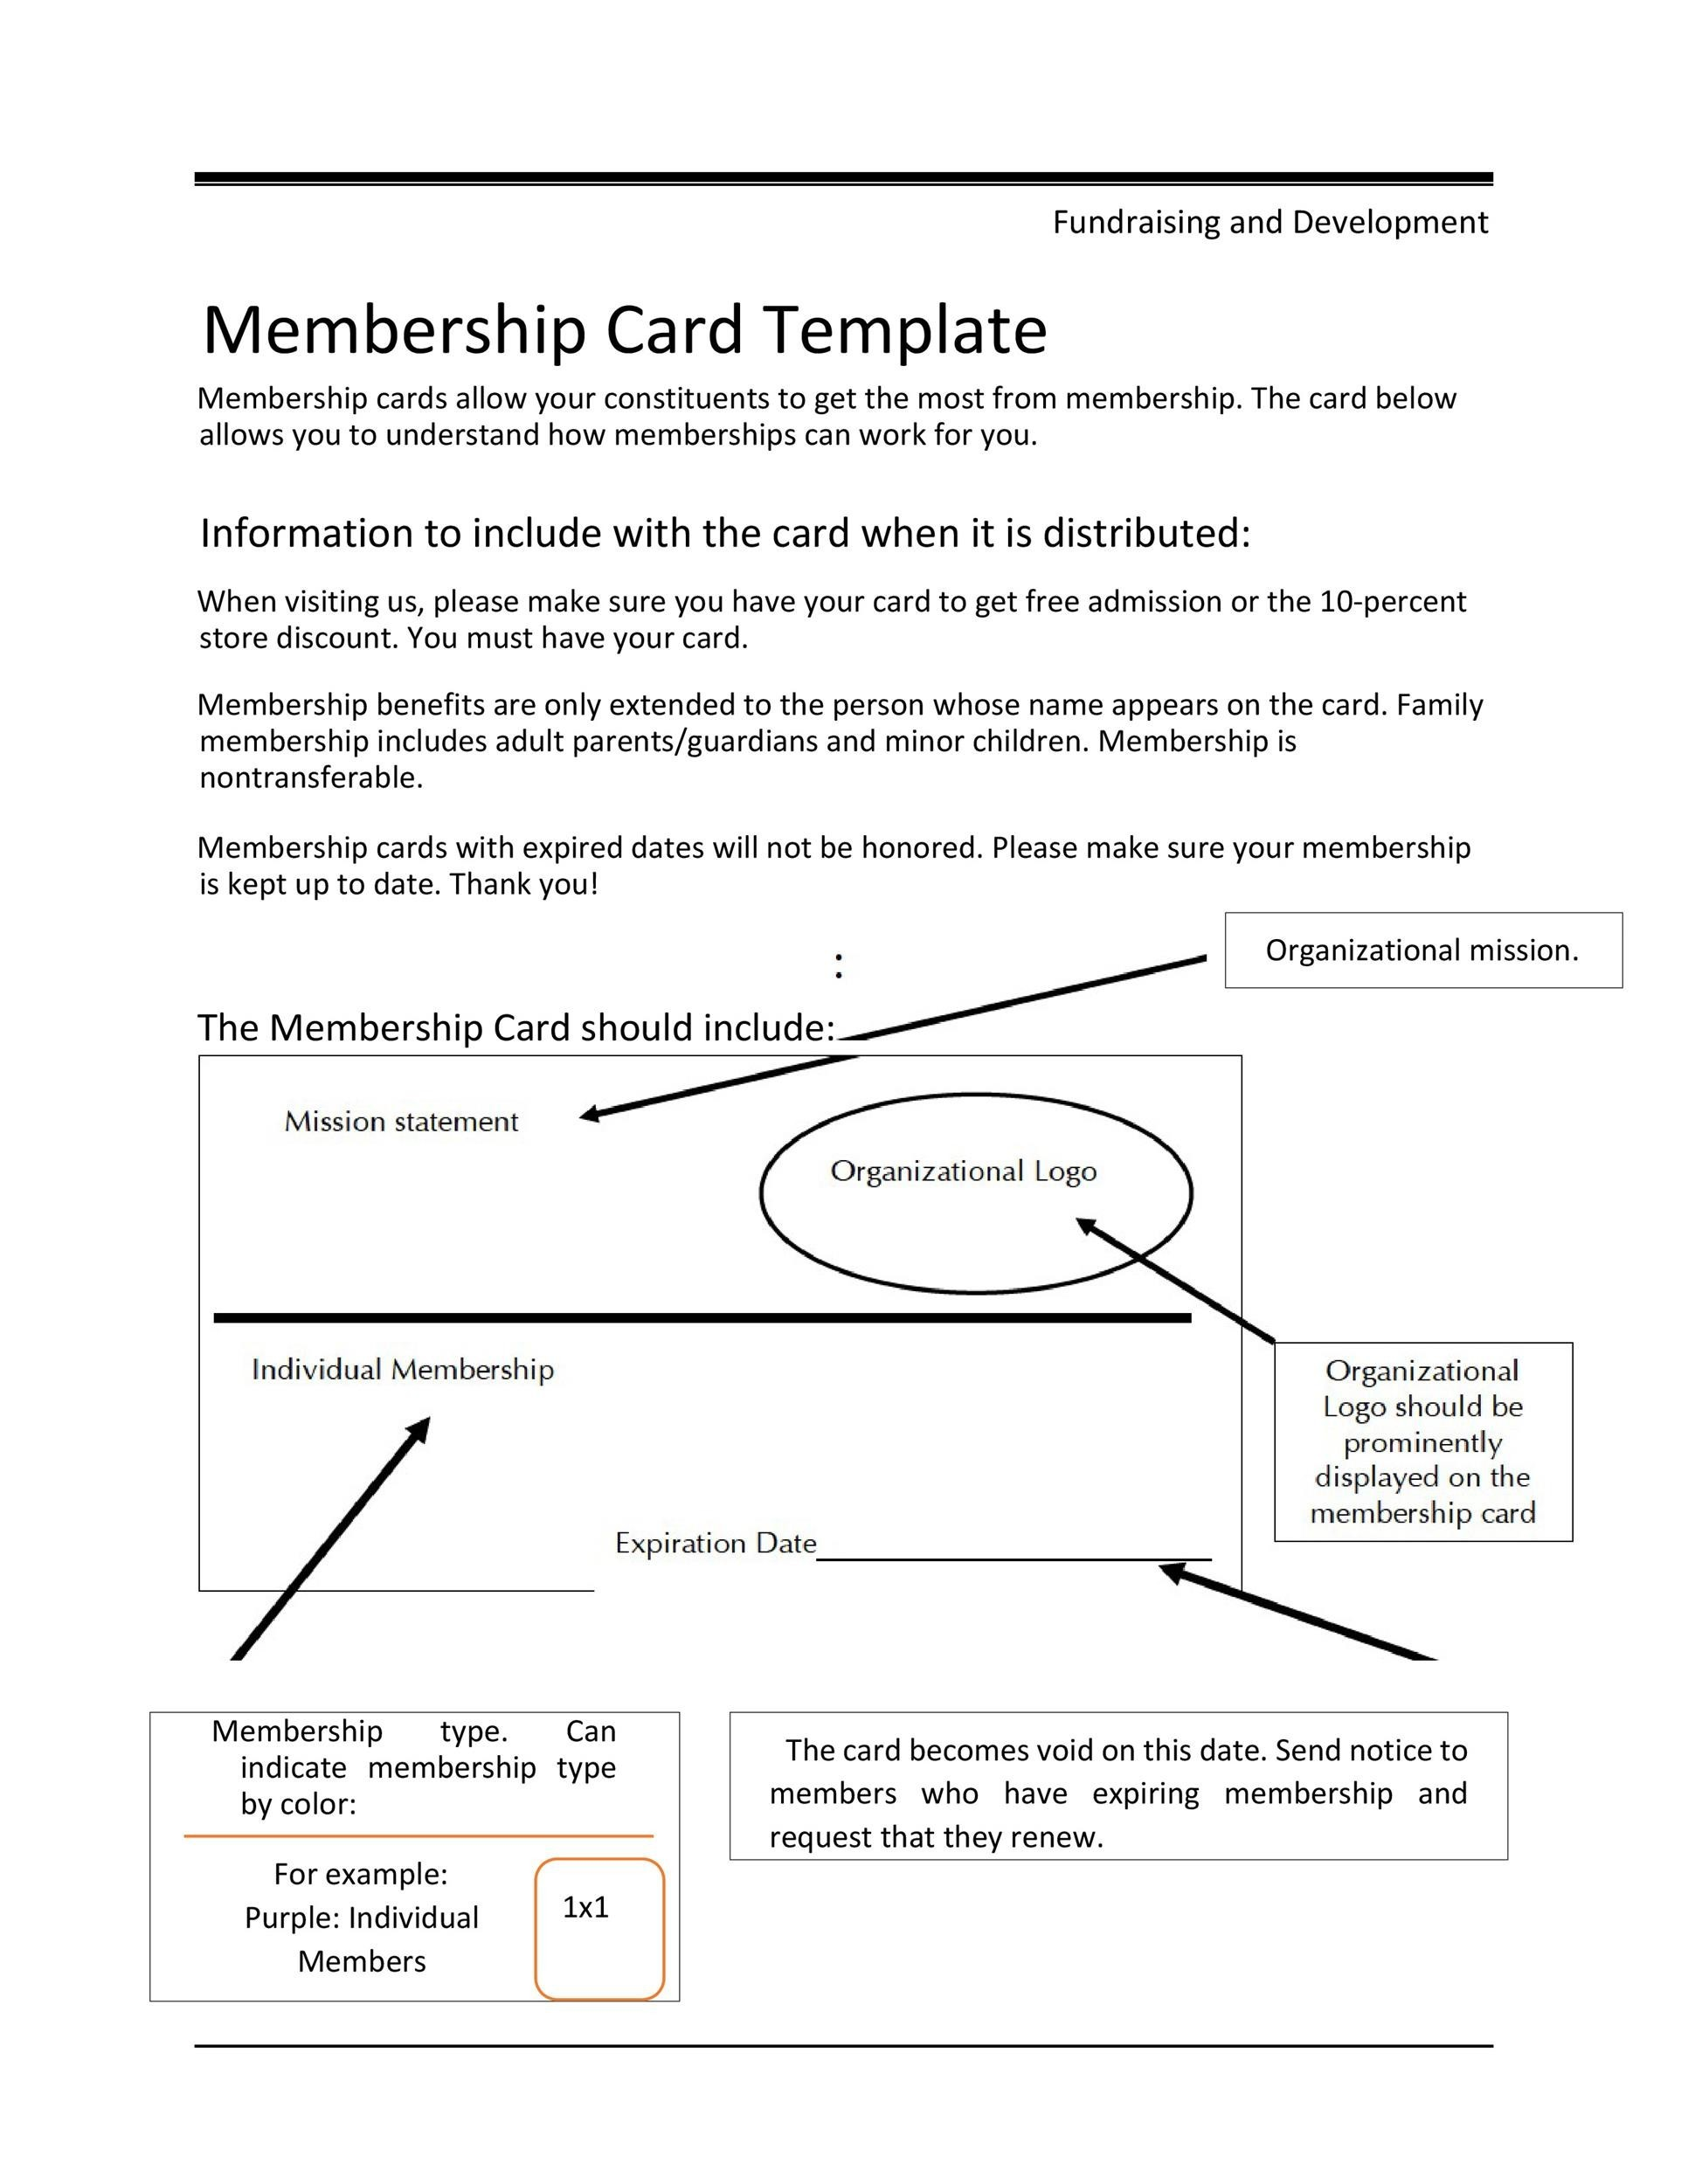 Free Membership Card Design Template 06